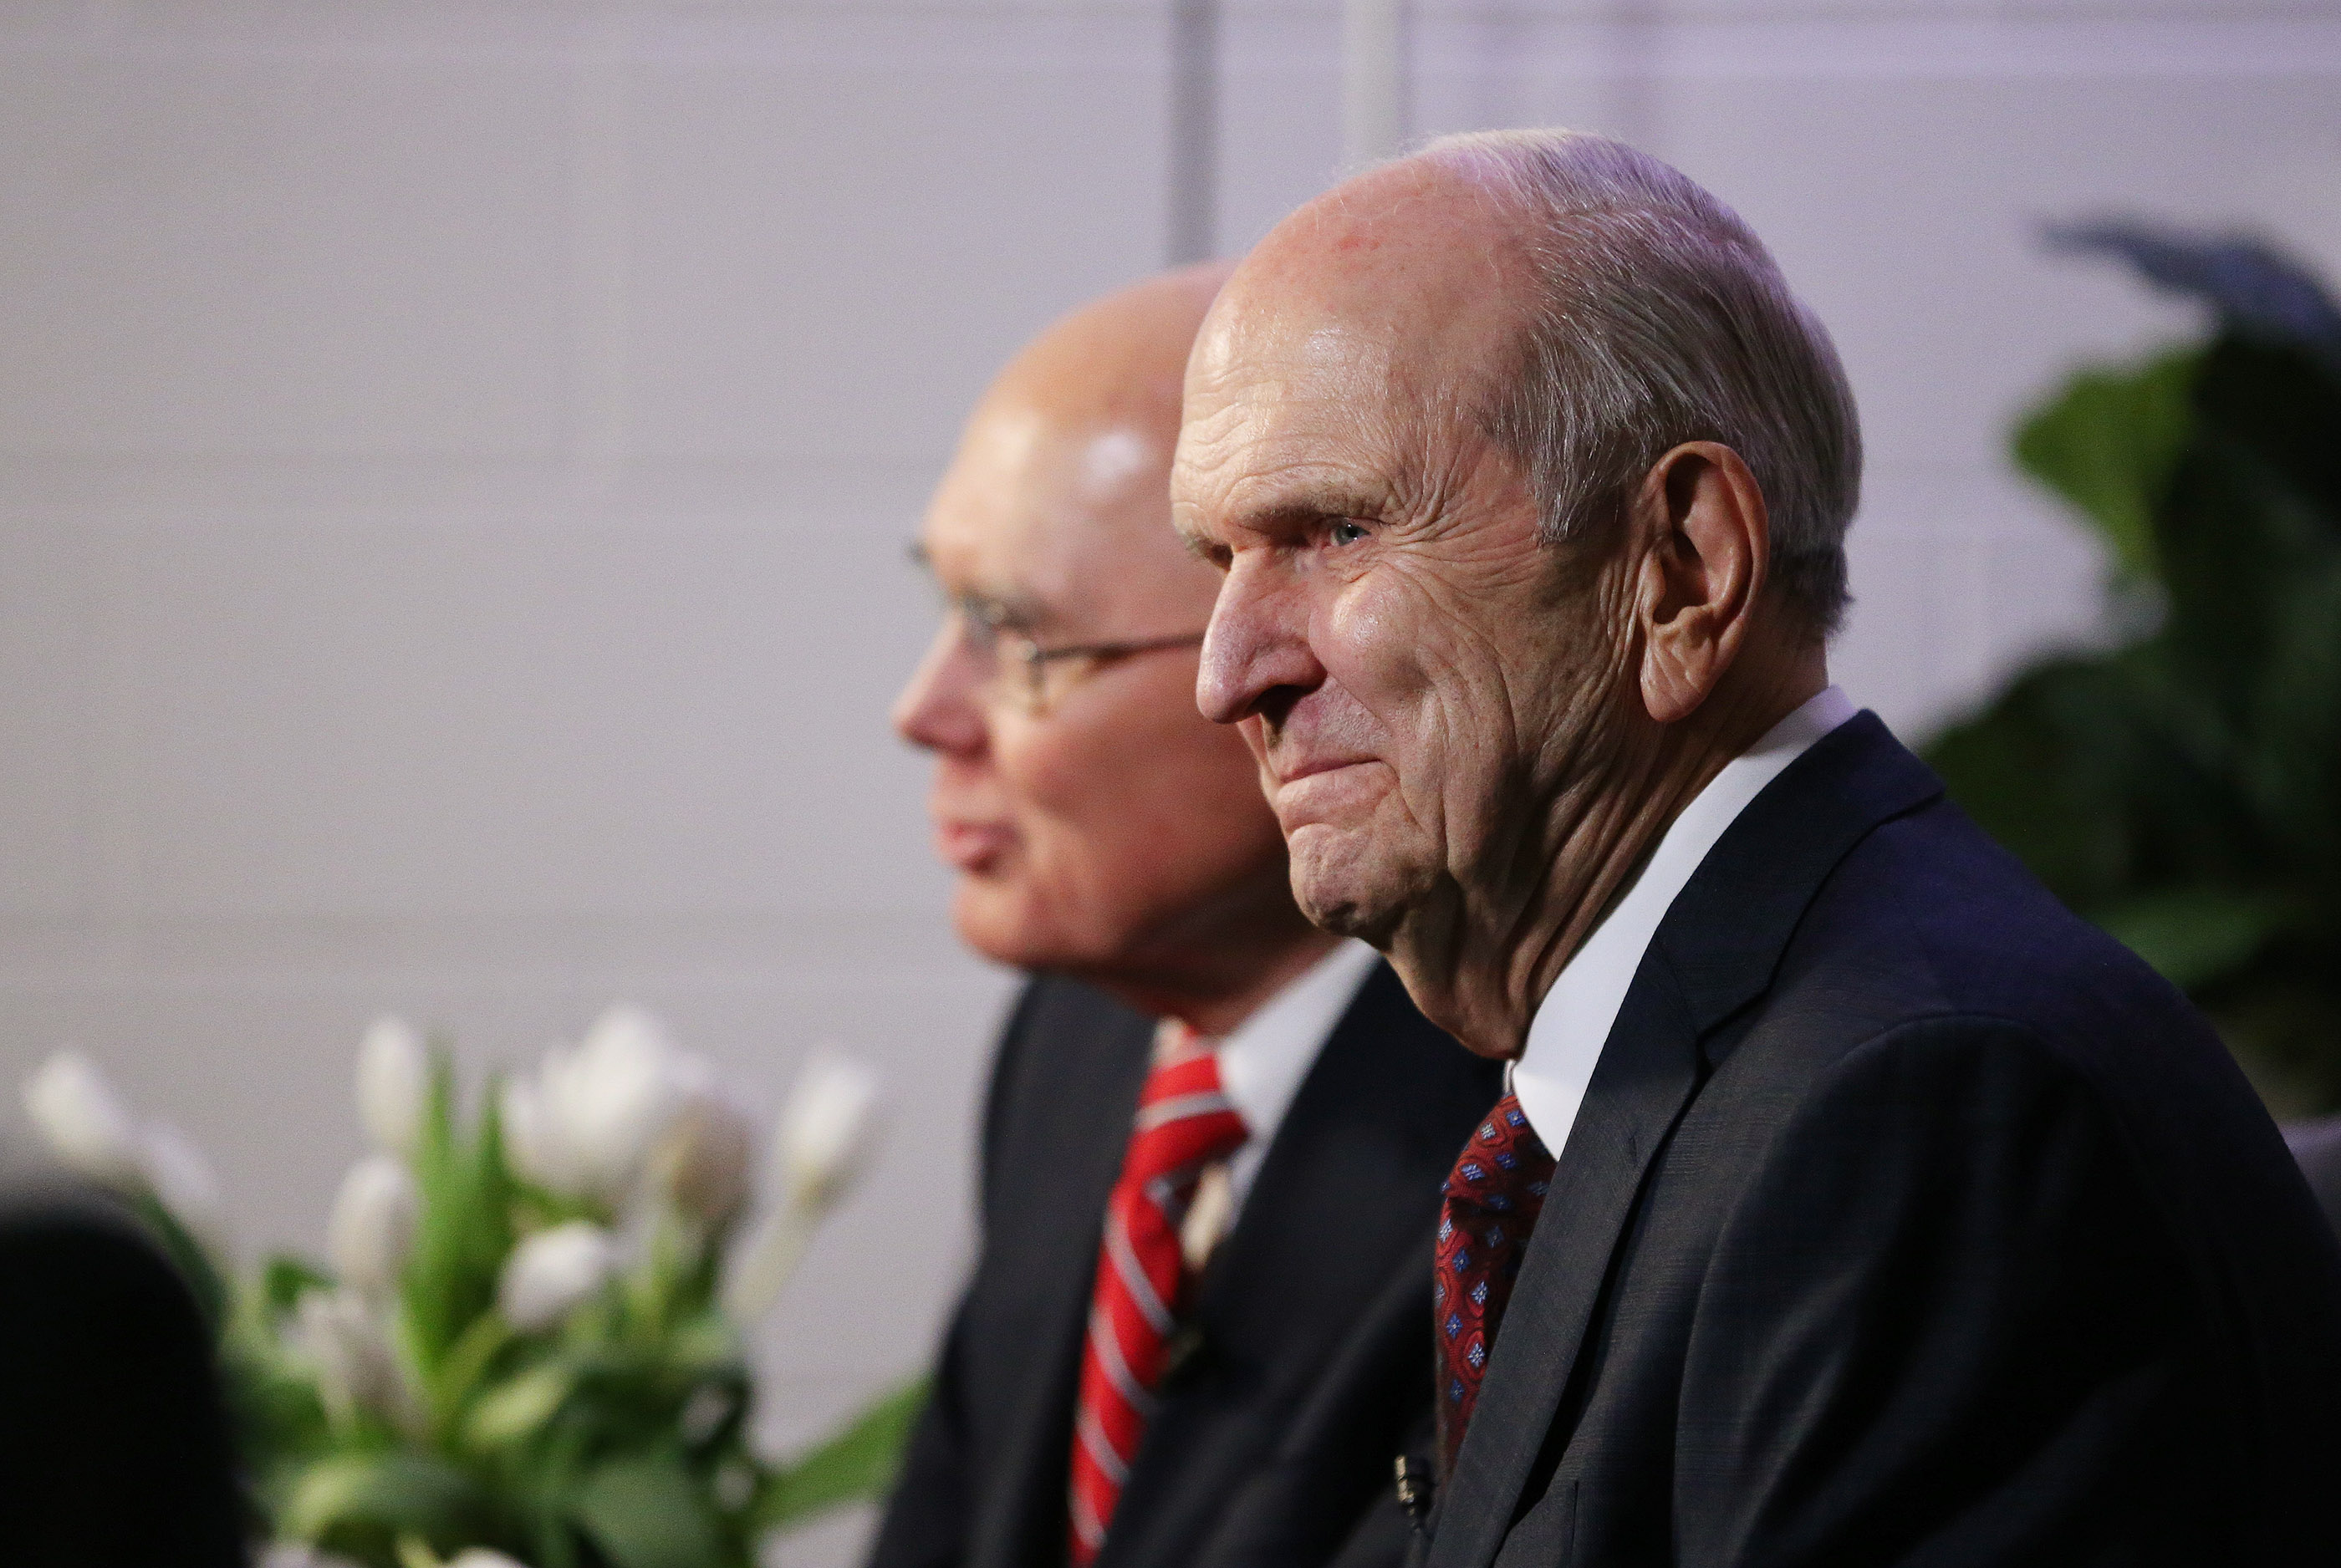 President Russell M. Nelson of The Church of Jesus Christ of Latter-day Saints and President Dallin H. Oaks, first counselor in the First Presidency, smile during a press conference at the State Farm Stadium in Phoenix on Sunday, Feb. 10, 2019.